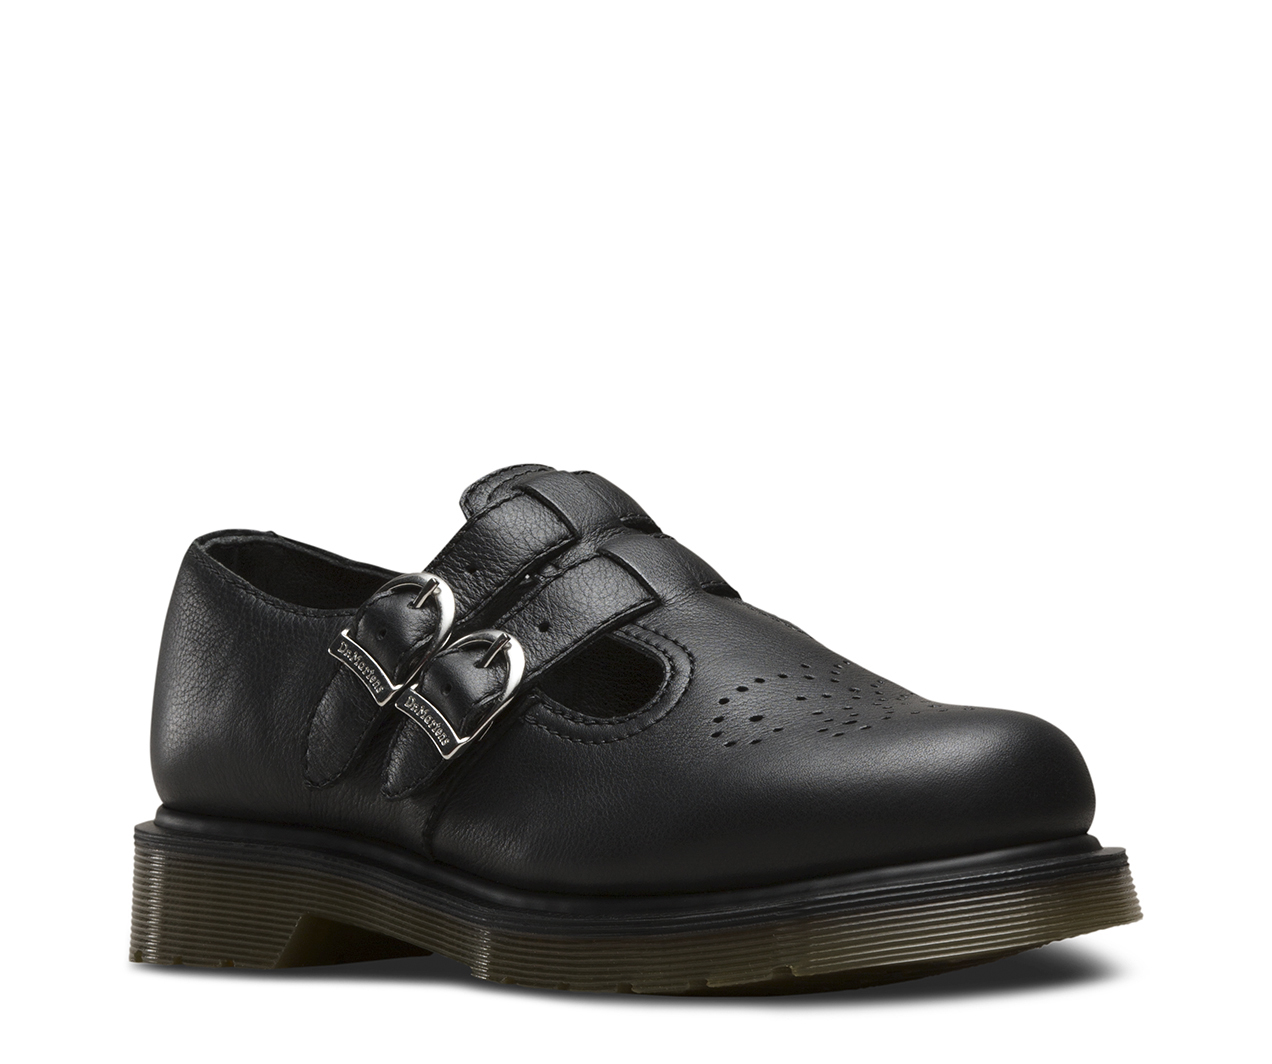 Dr Martens Womens 8065 Pw Shoe